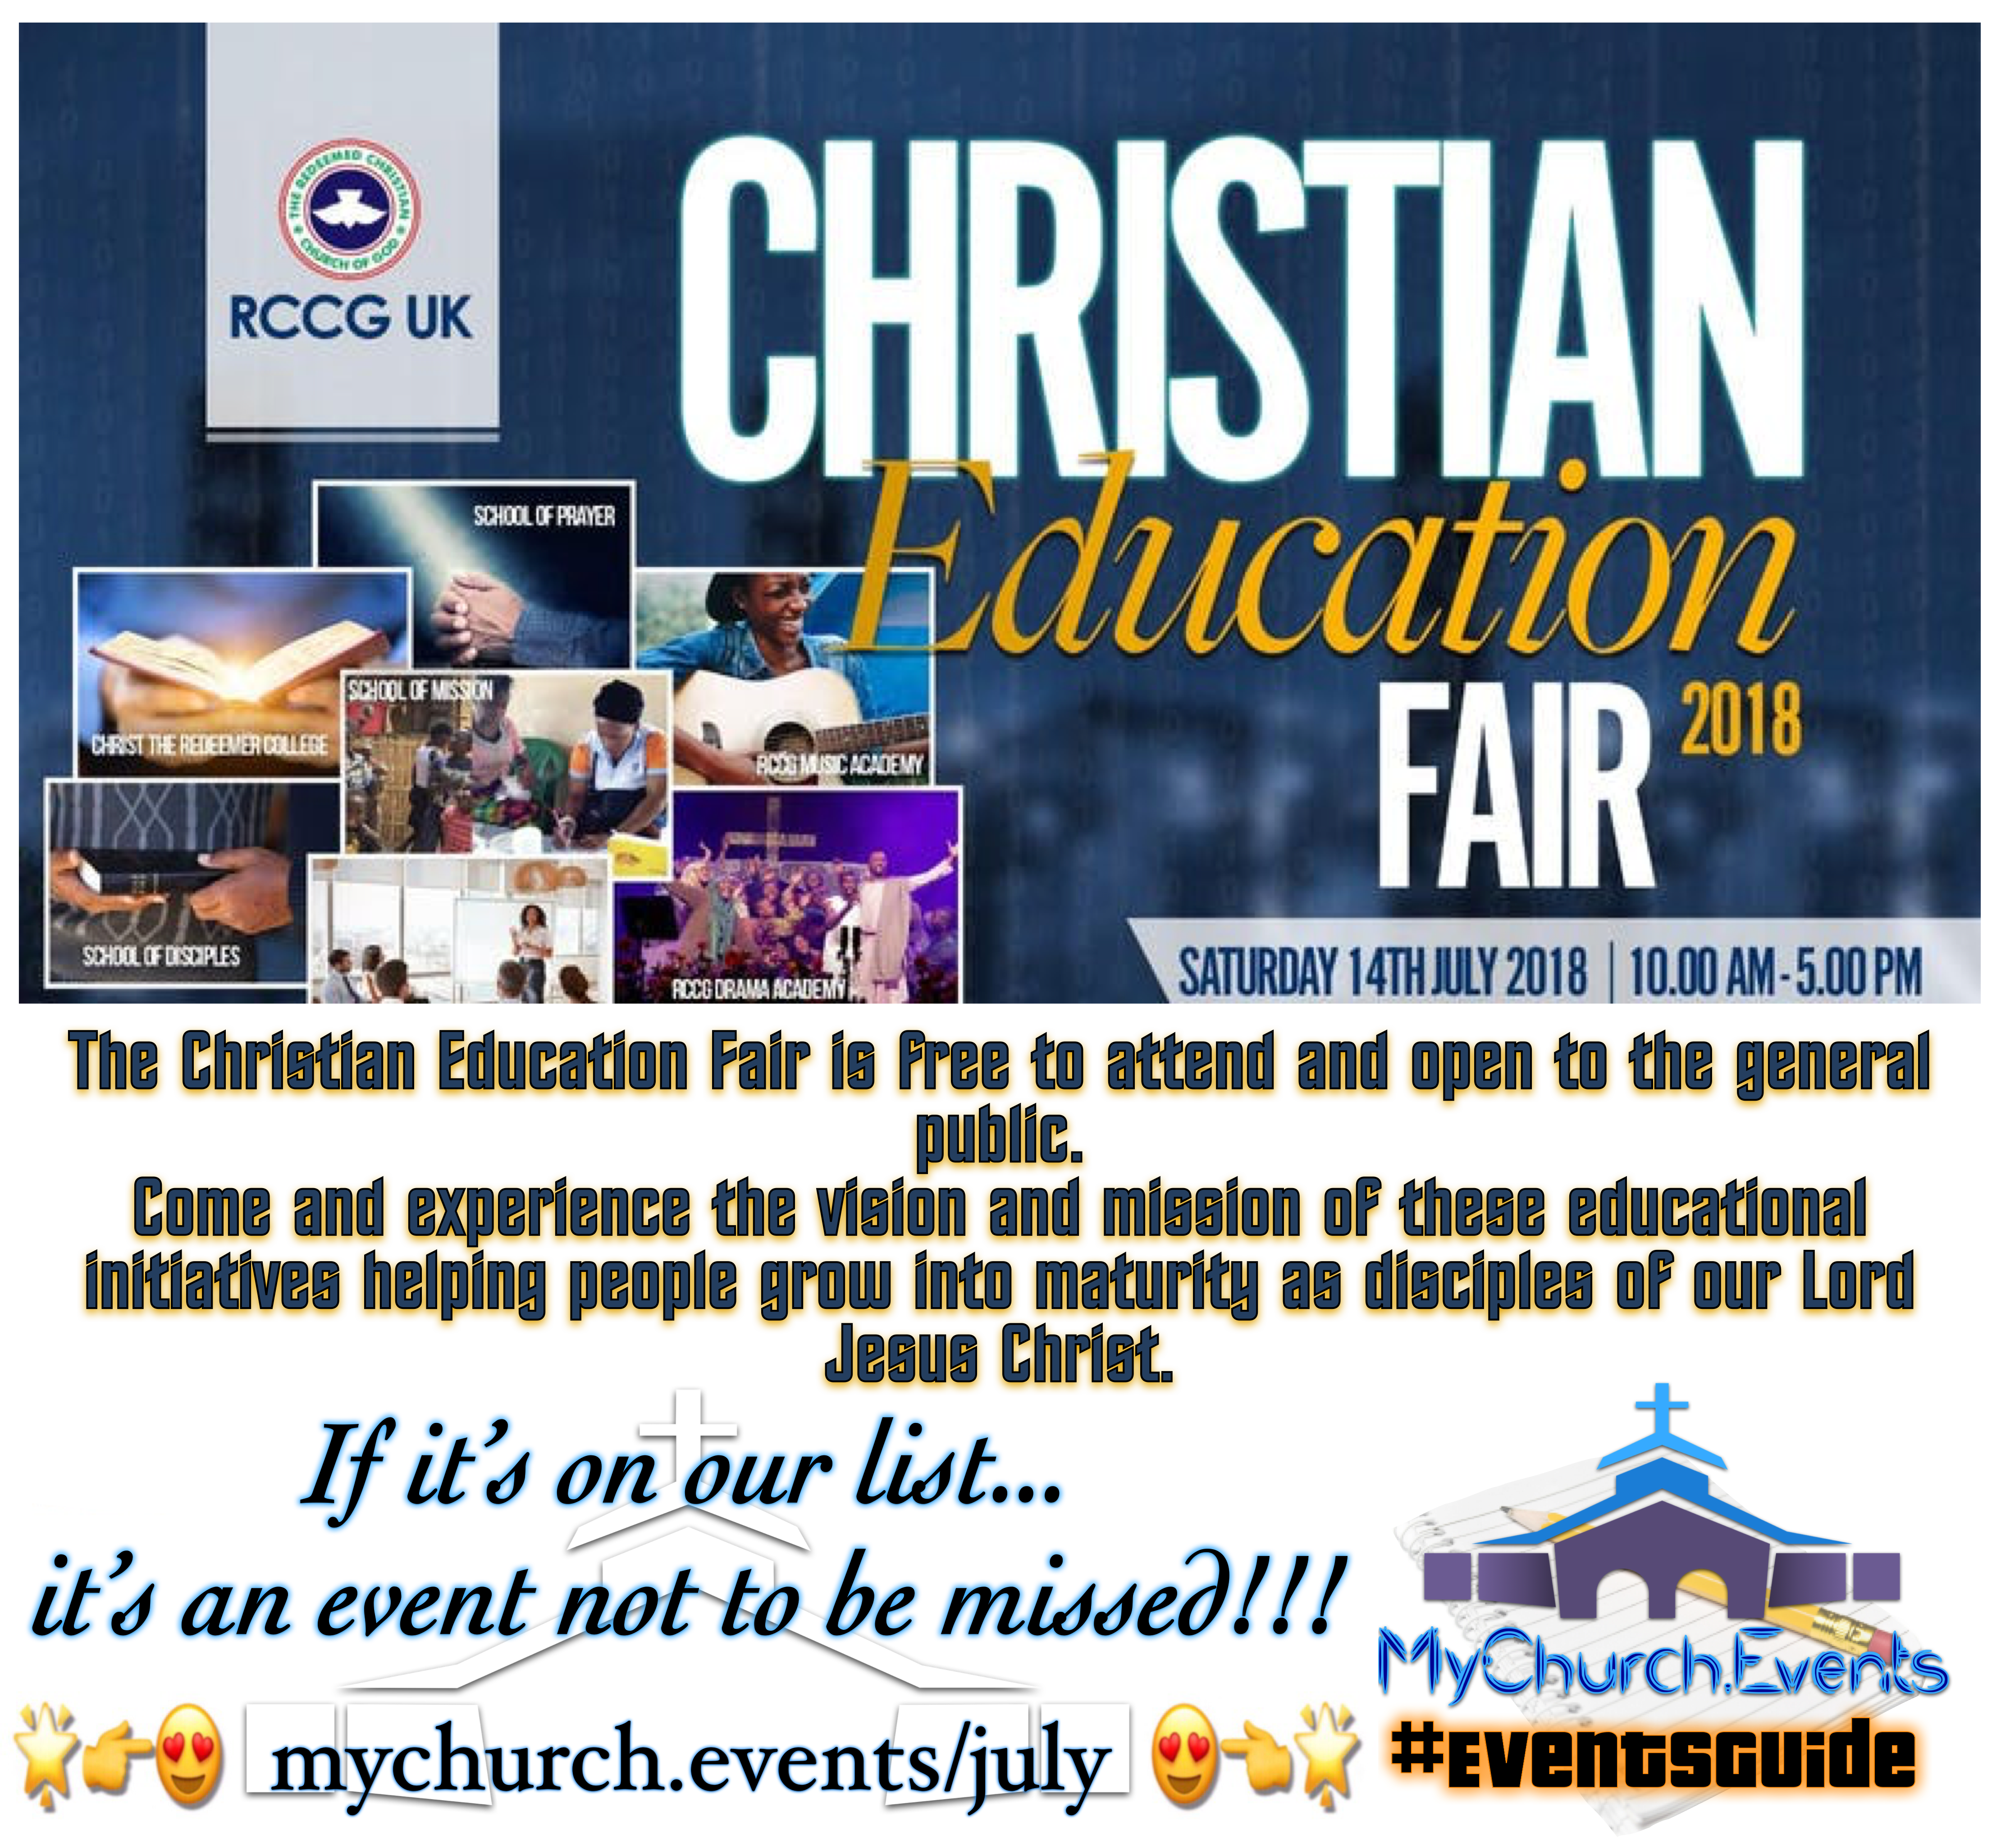 Pin By Fahid Pervaiz On Pastors Christian Education Education Fair Helping People